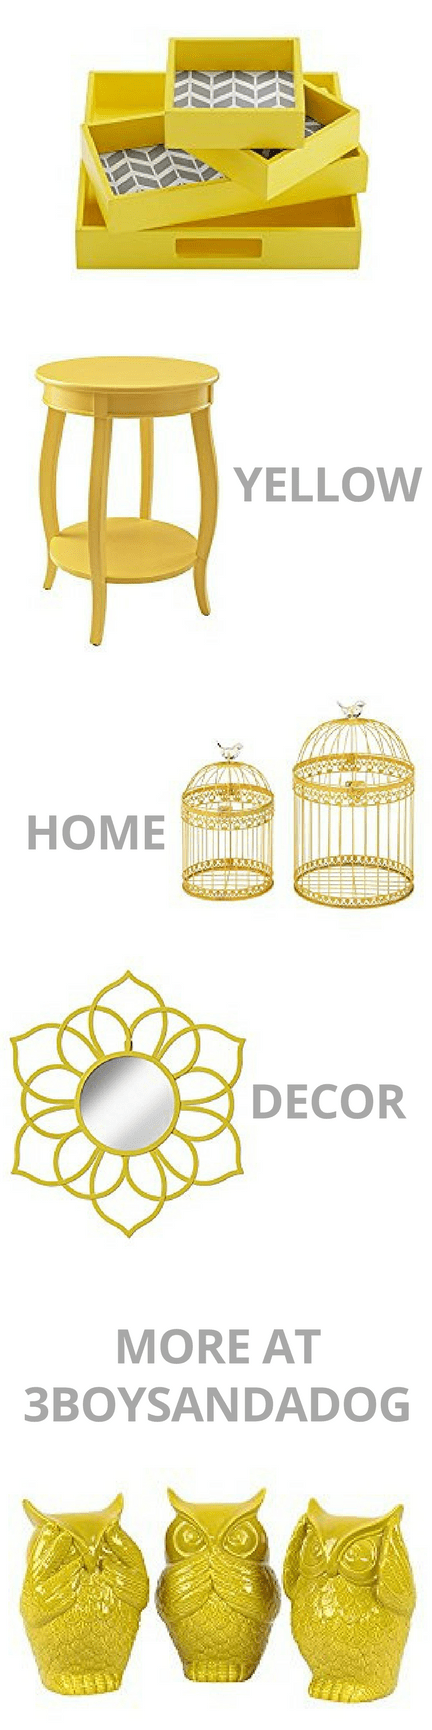 Add a splash of color with this list of over 27 Yellow Home Decor Accents for Home Decorating.  Soft Buttery Yellow or a Darker Mustard Yellow makes a great accent color in your home because it adds a splash of pop and can go with pretty much any color you want: black, blue, grey, olive, more.